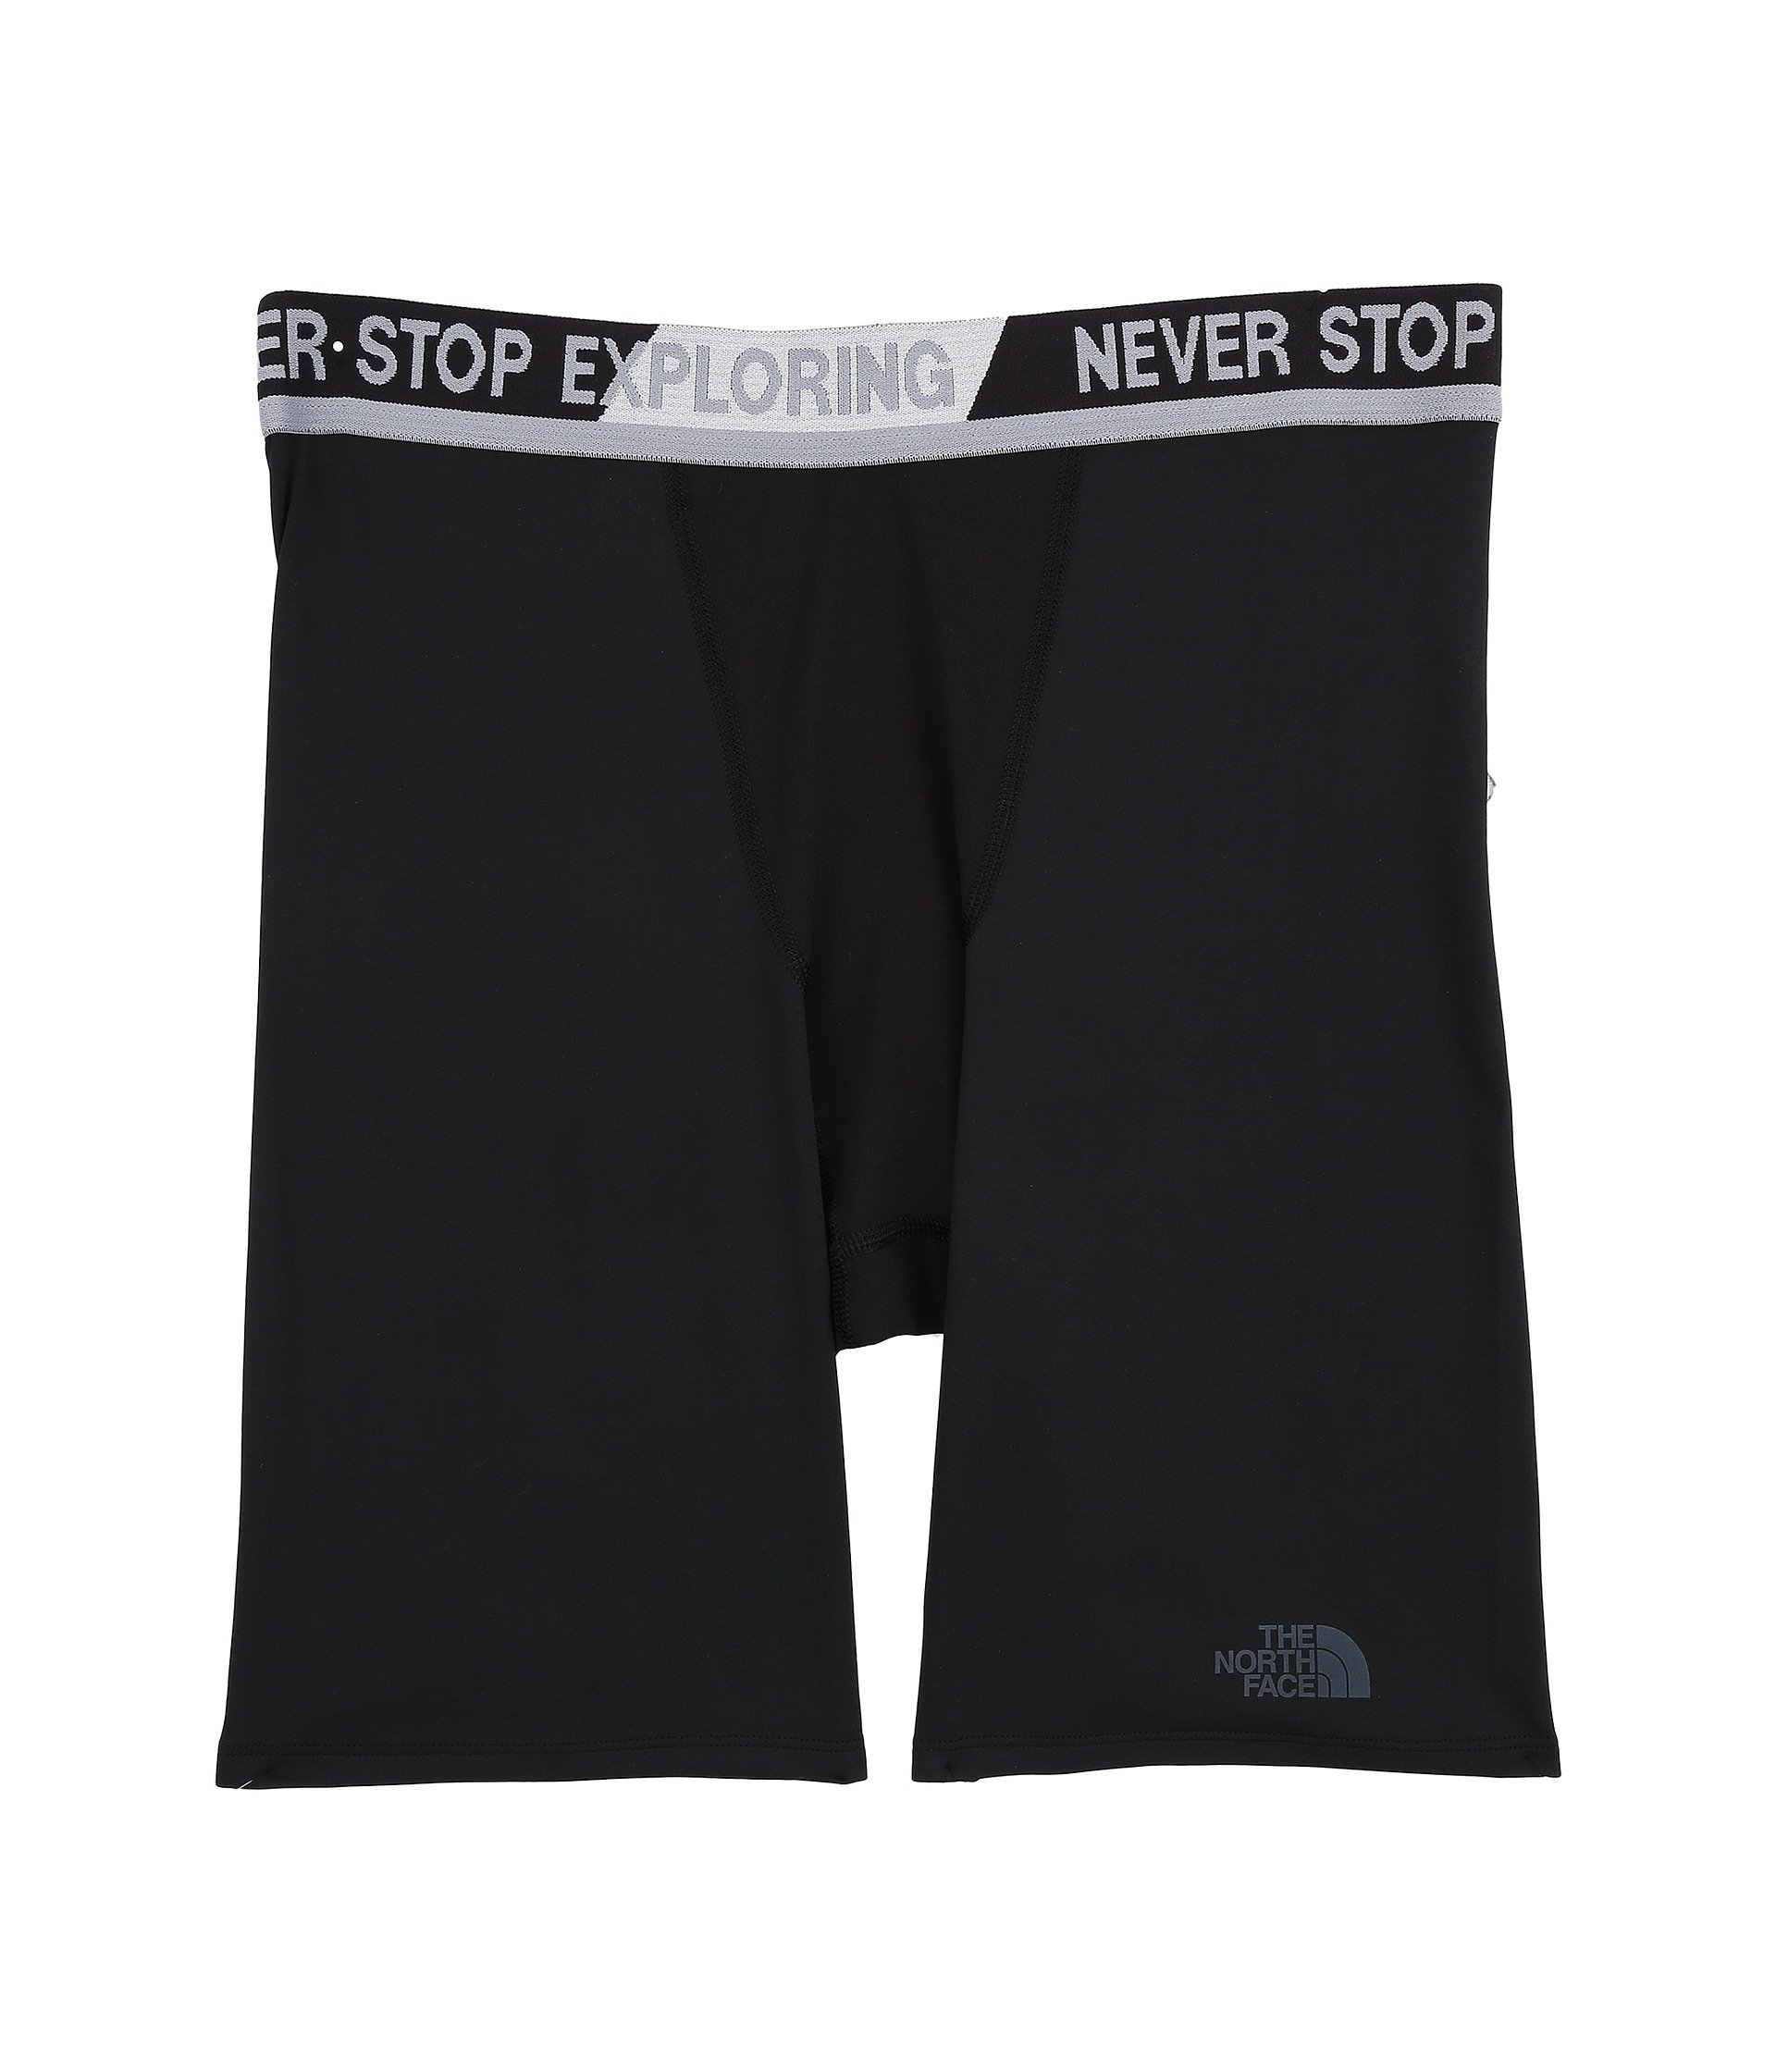 Ropa Interior para Hombre The North Face Training Boxer Shorts 9and#34;  + The North Face en VeoyCompro.net